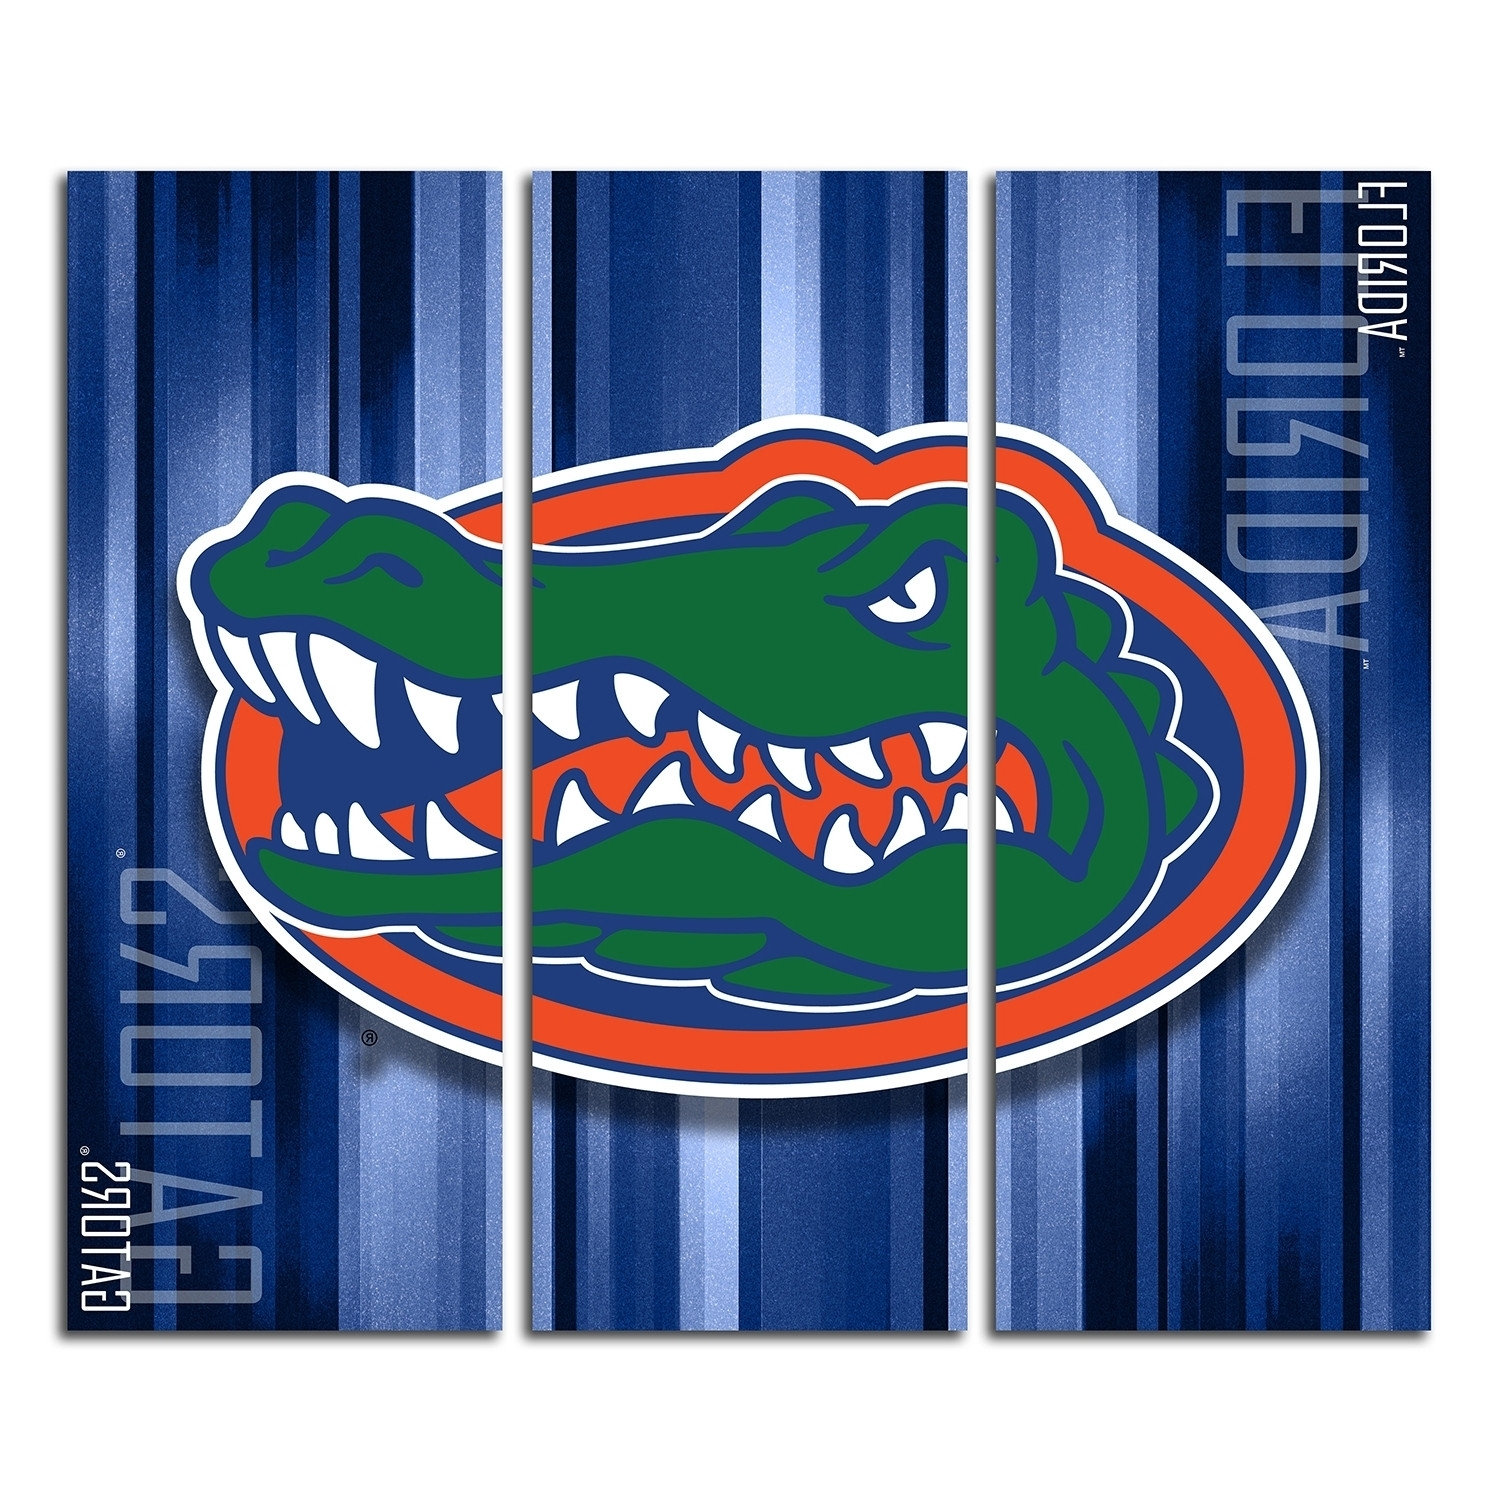 Image Gallery Of Florida Gator Wall Art View 3 15 Photos Stunning Regarding Most Popular Florida Wall Art (View 10 of 20)